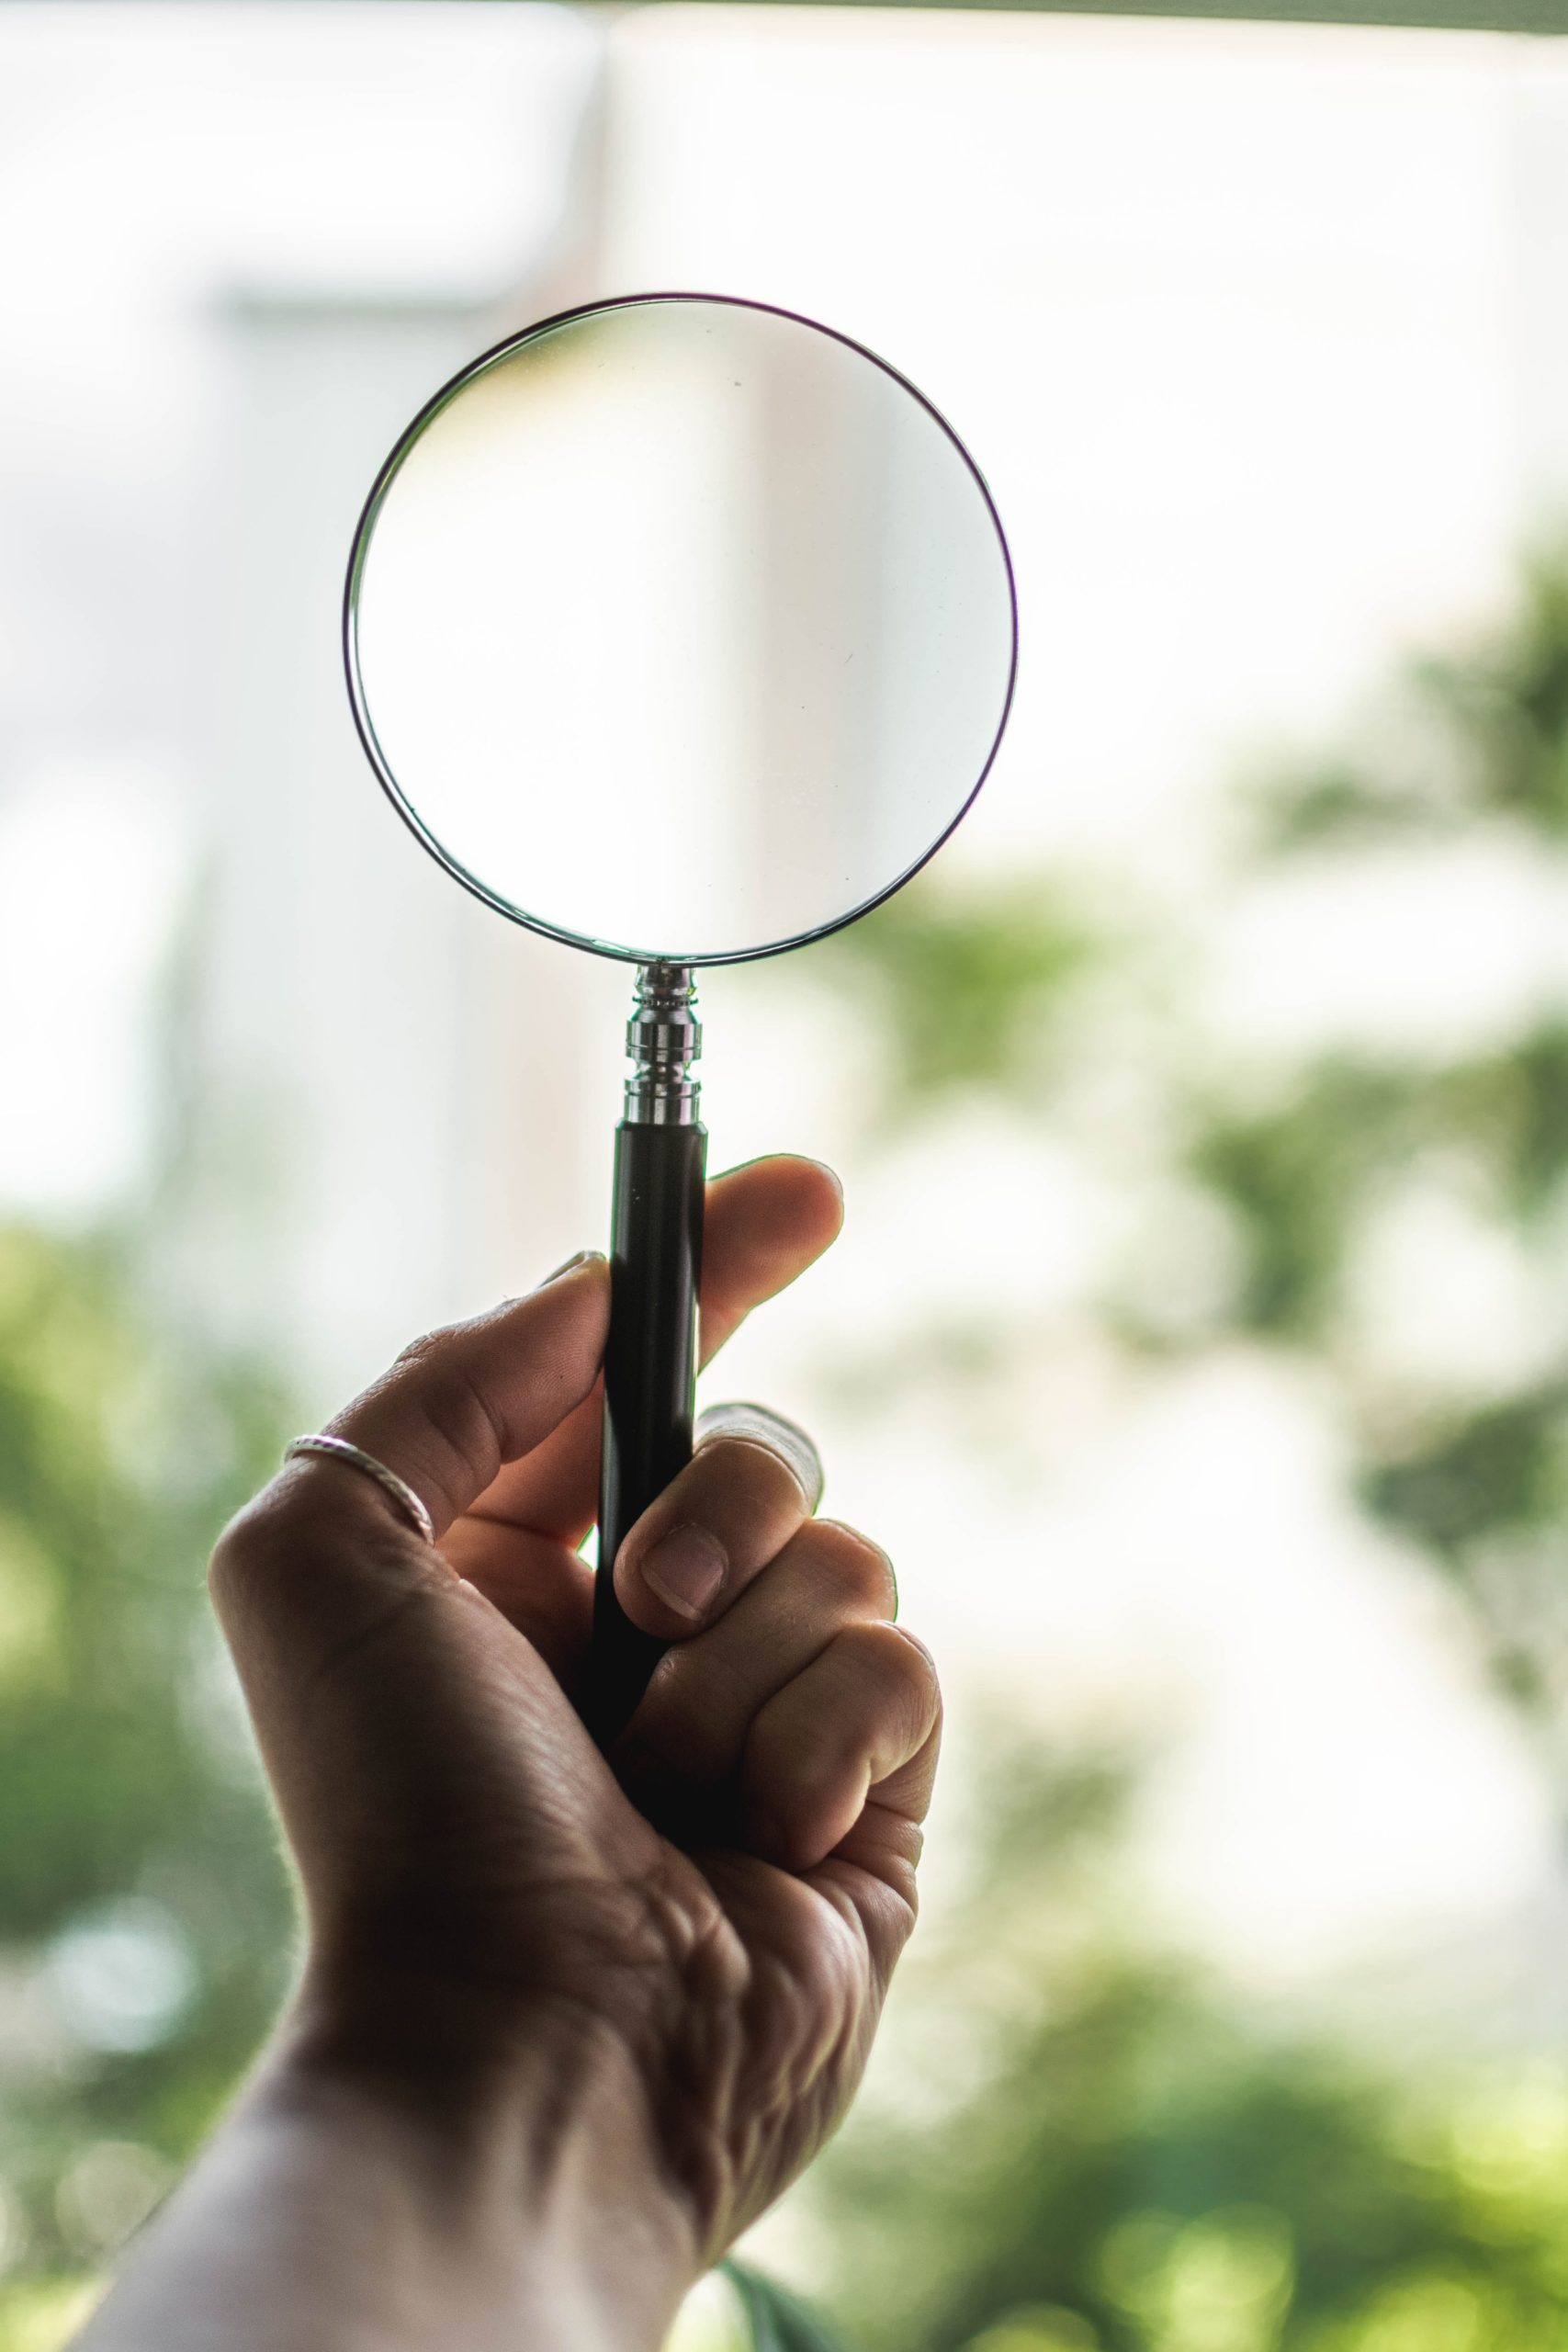 tilt-shift-lens-photography-of-person-holding-magnifying-1192333